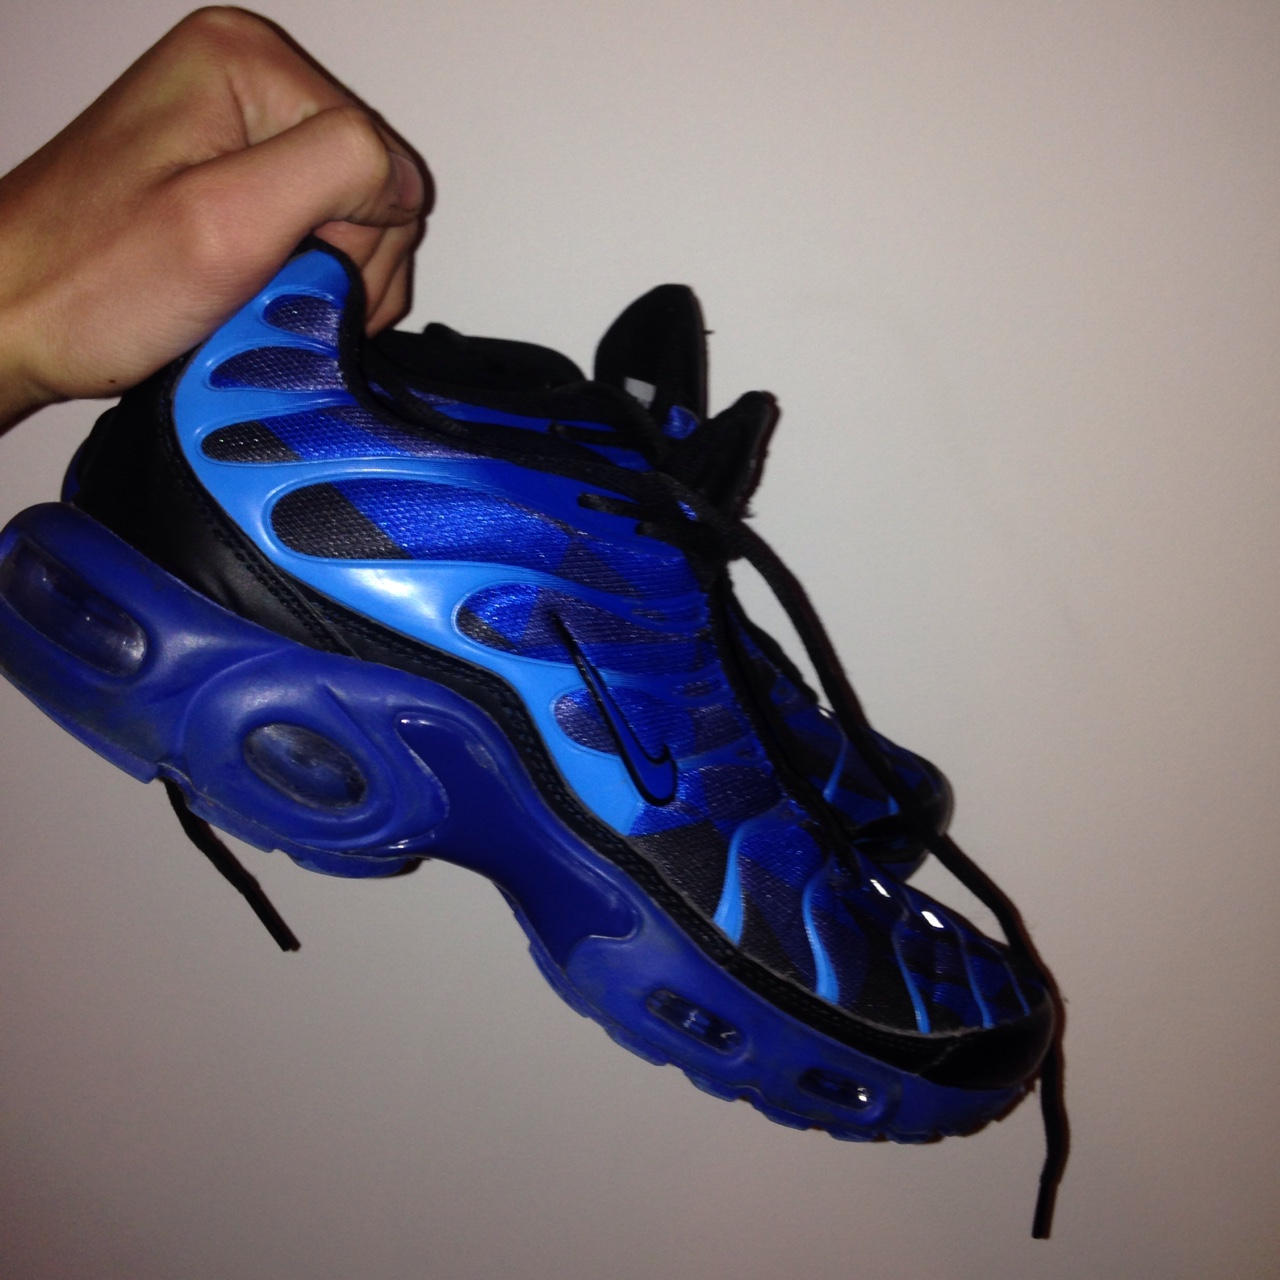 new style 3b4ec 98bcd nike tn ice pack blue/black/dark blue; extremely... - Depop